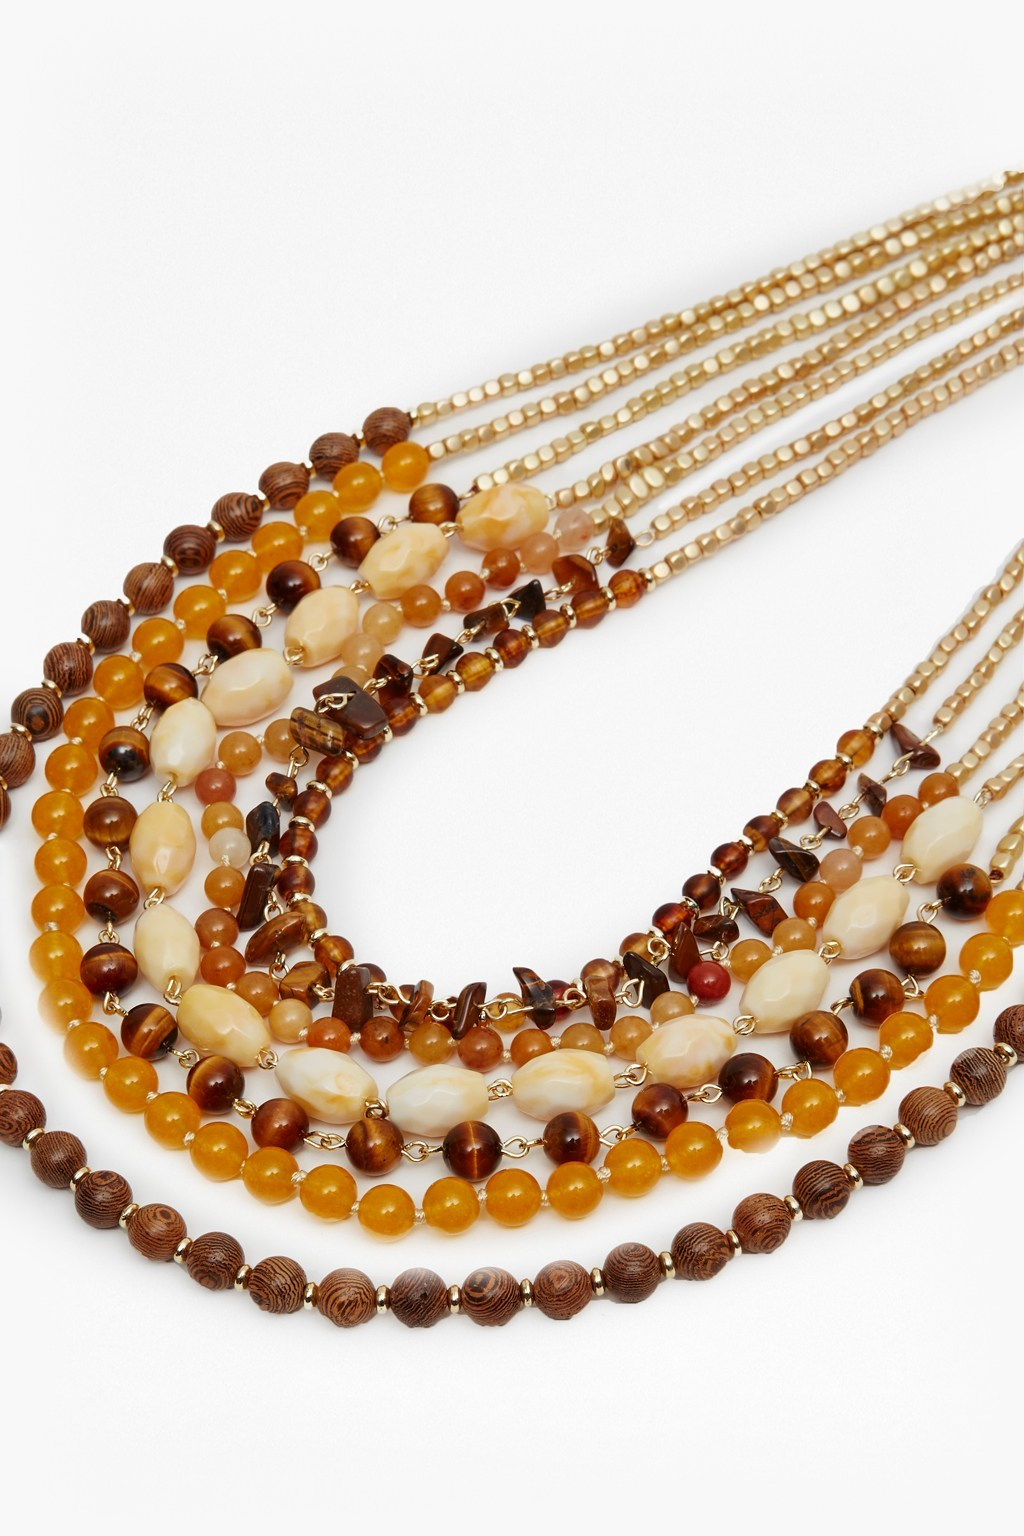 Multi Row Beaded Necklace Matte Gold/Saffron Multi - predominant colour: chocolate brown; secondary colour: camel; occasions: casual; style: multistrand; length: long; size: large/oversized; material: plastic/rubber; finish: plain; embellishment: beading; multicoloured: multicoloured; season: s/s 2016; wardrobe: highlight